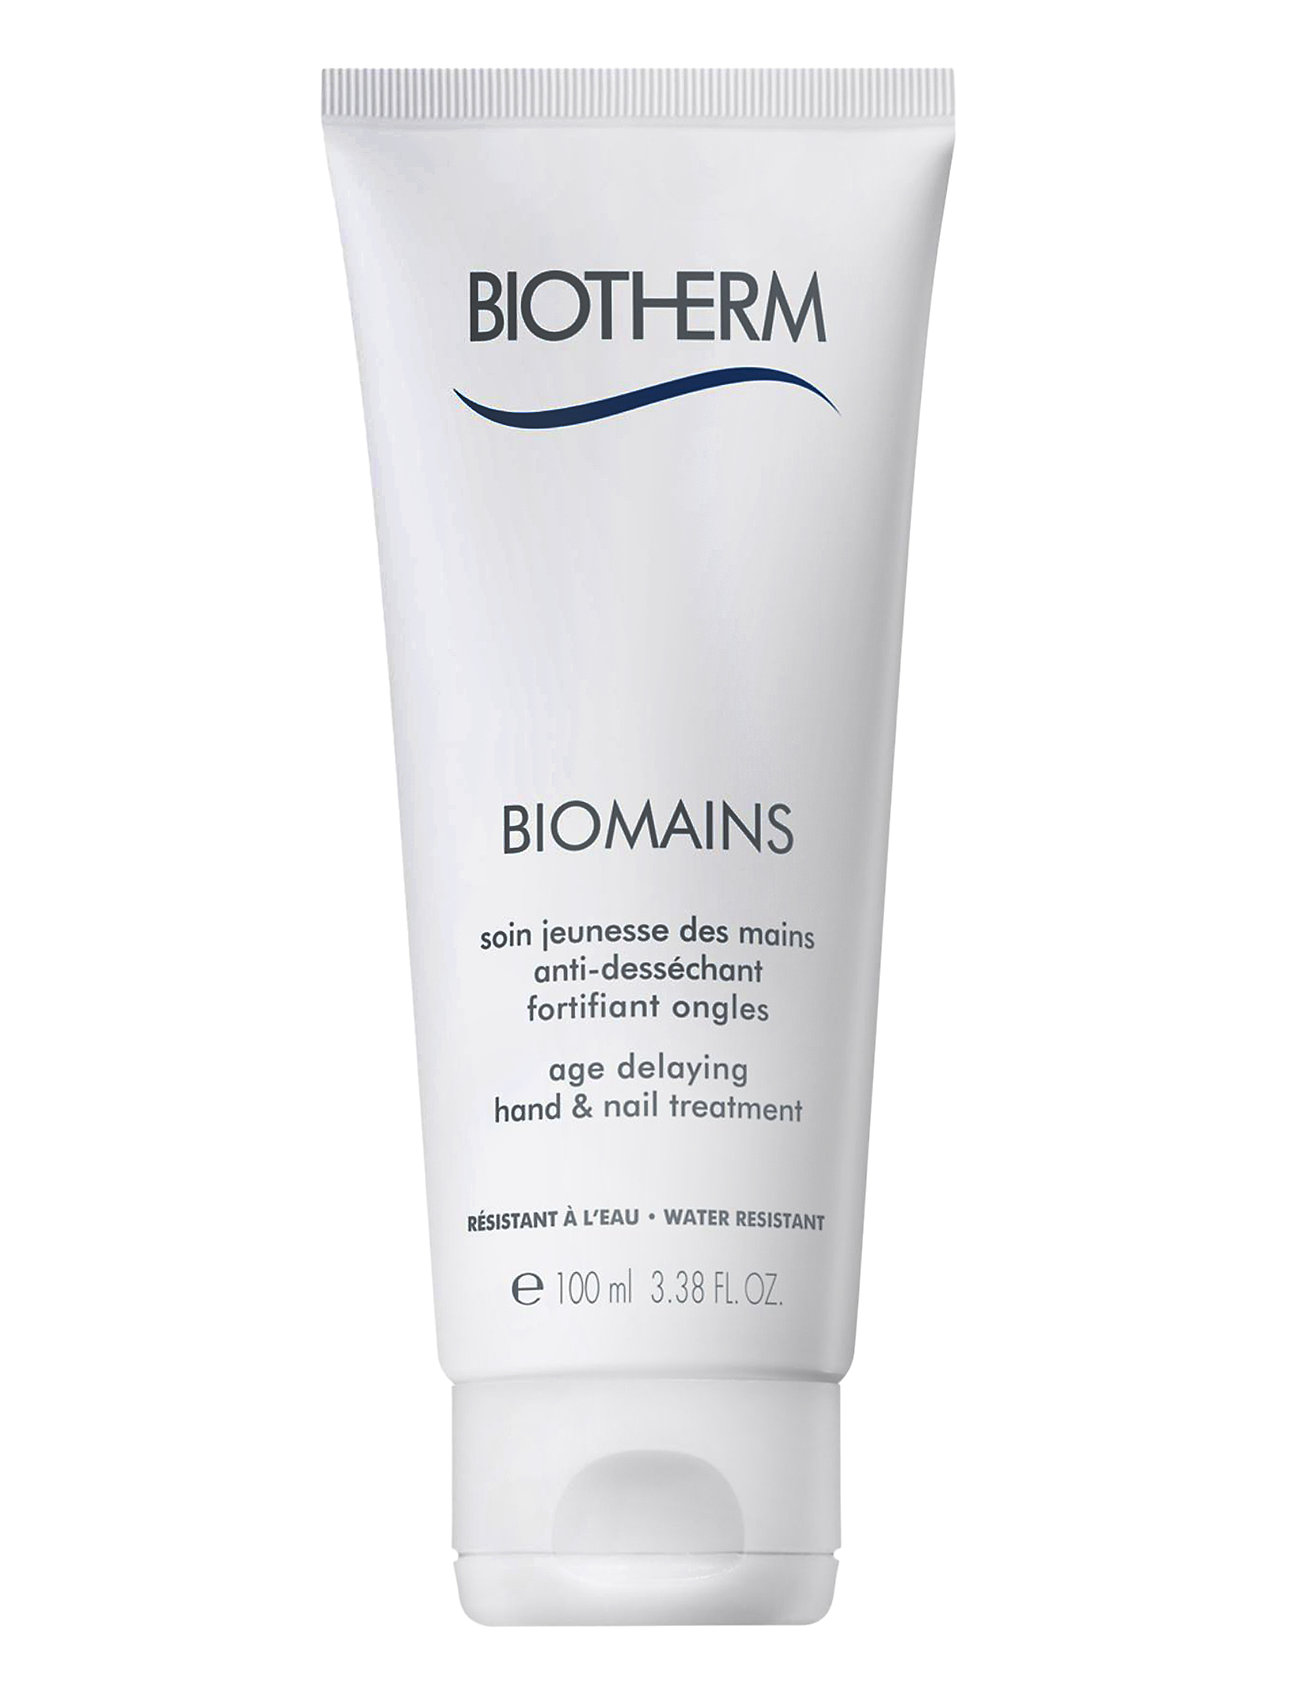 Image of Biomains Hand Cream 100ml Beauty WOMEN Skin Care Body Hand Cream & Foot Cream Nude Biotherm (3254641893)